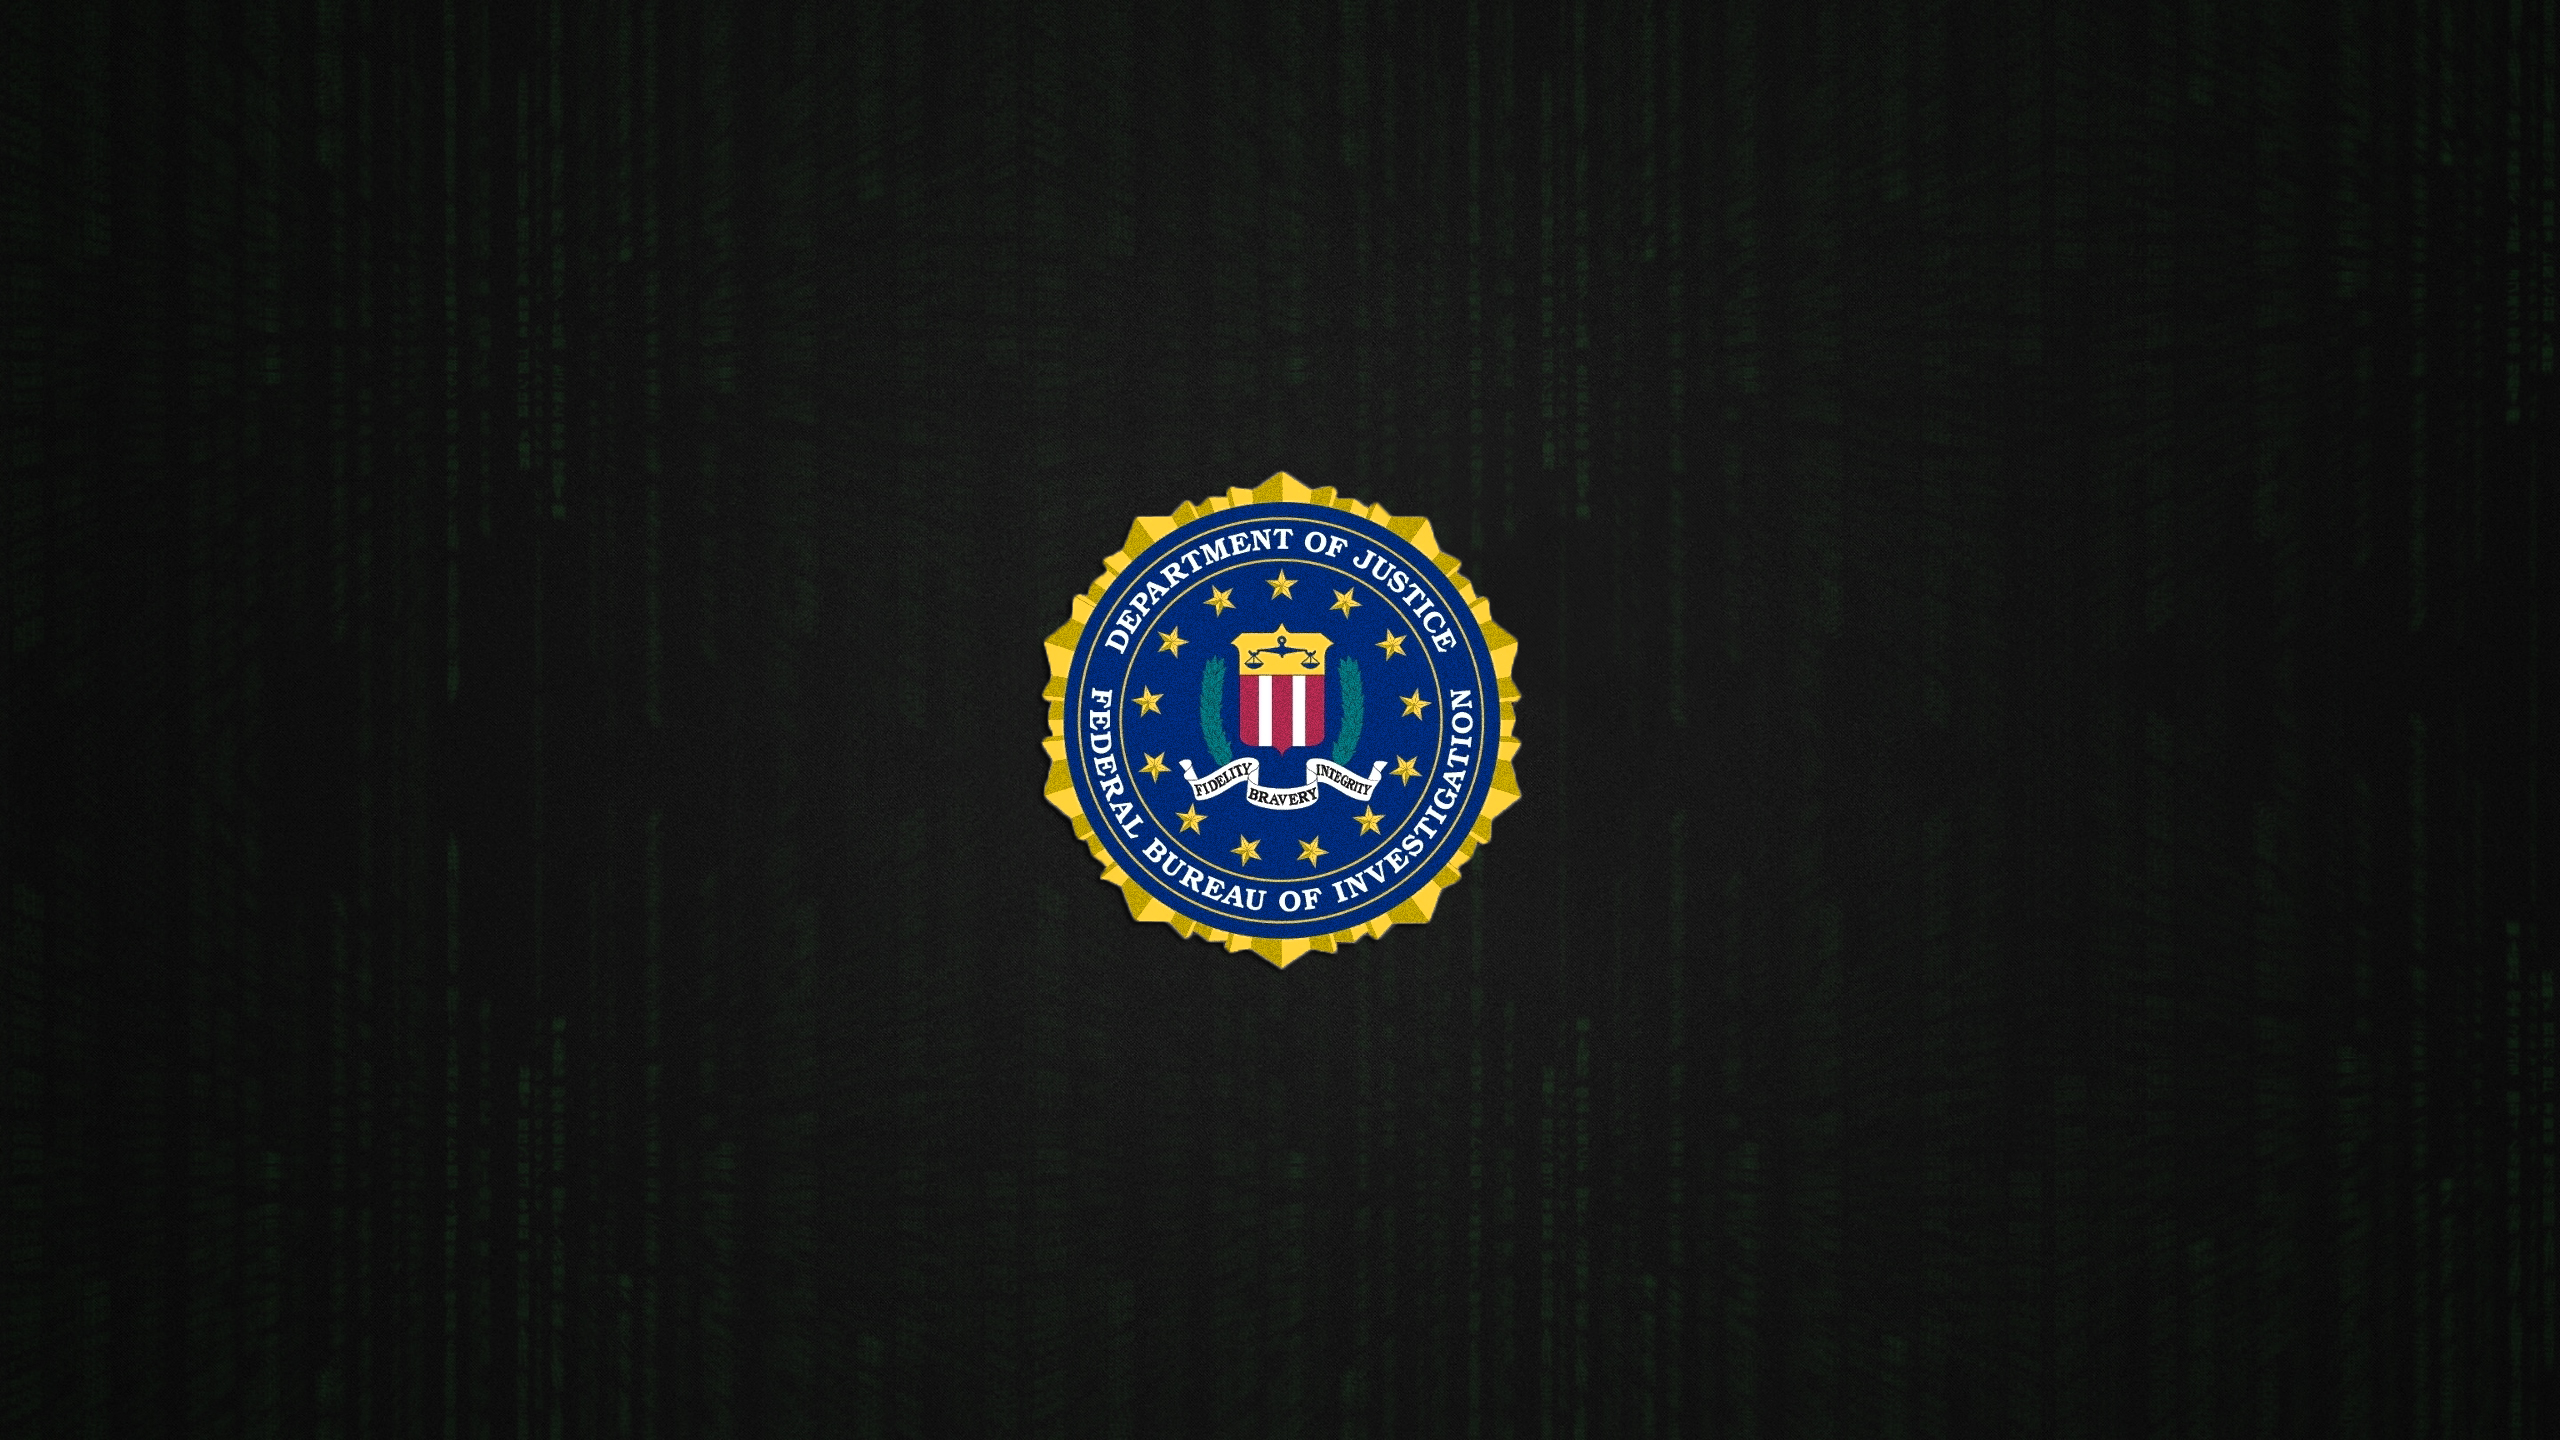 wallpapers fbi wall - photo #12